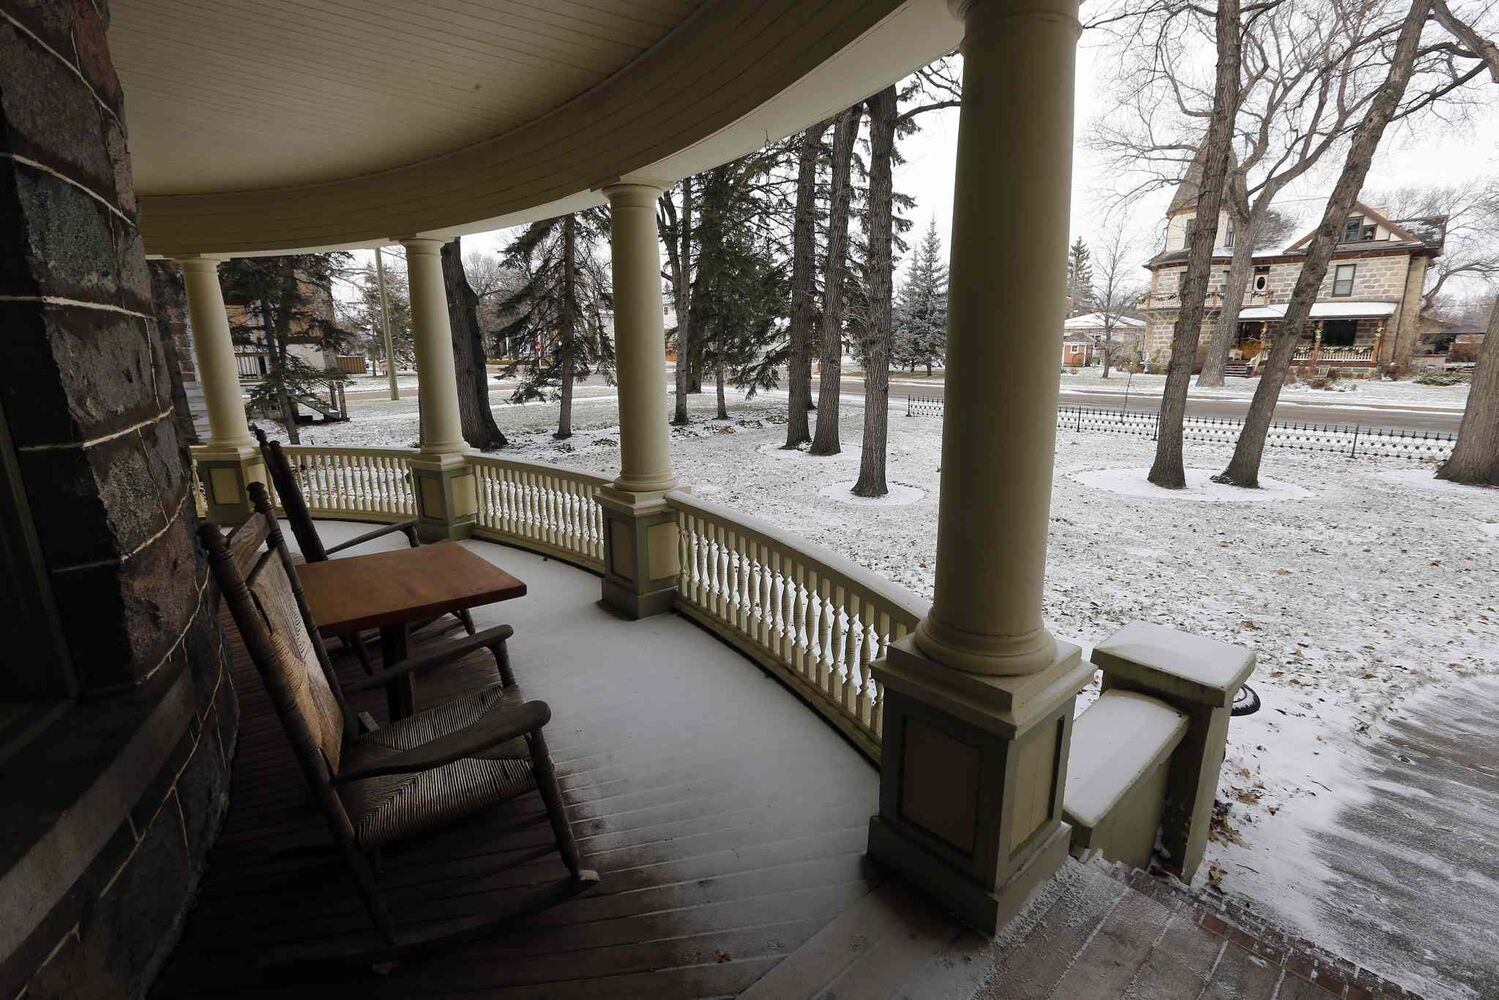 Another historic stone house can be seen from the curved front porch. (KEN GIGLIOTTI / WINNIPEG FREE PRESS)